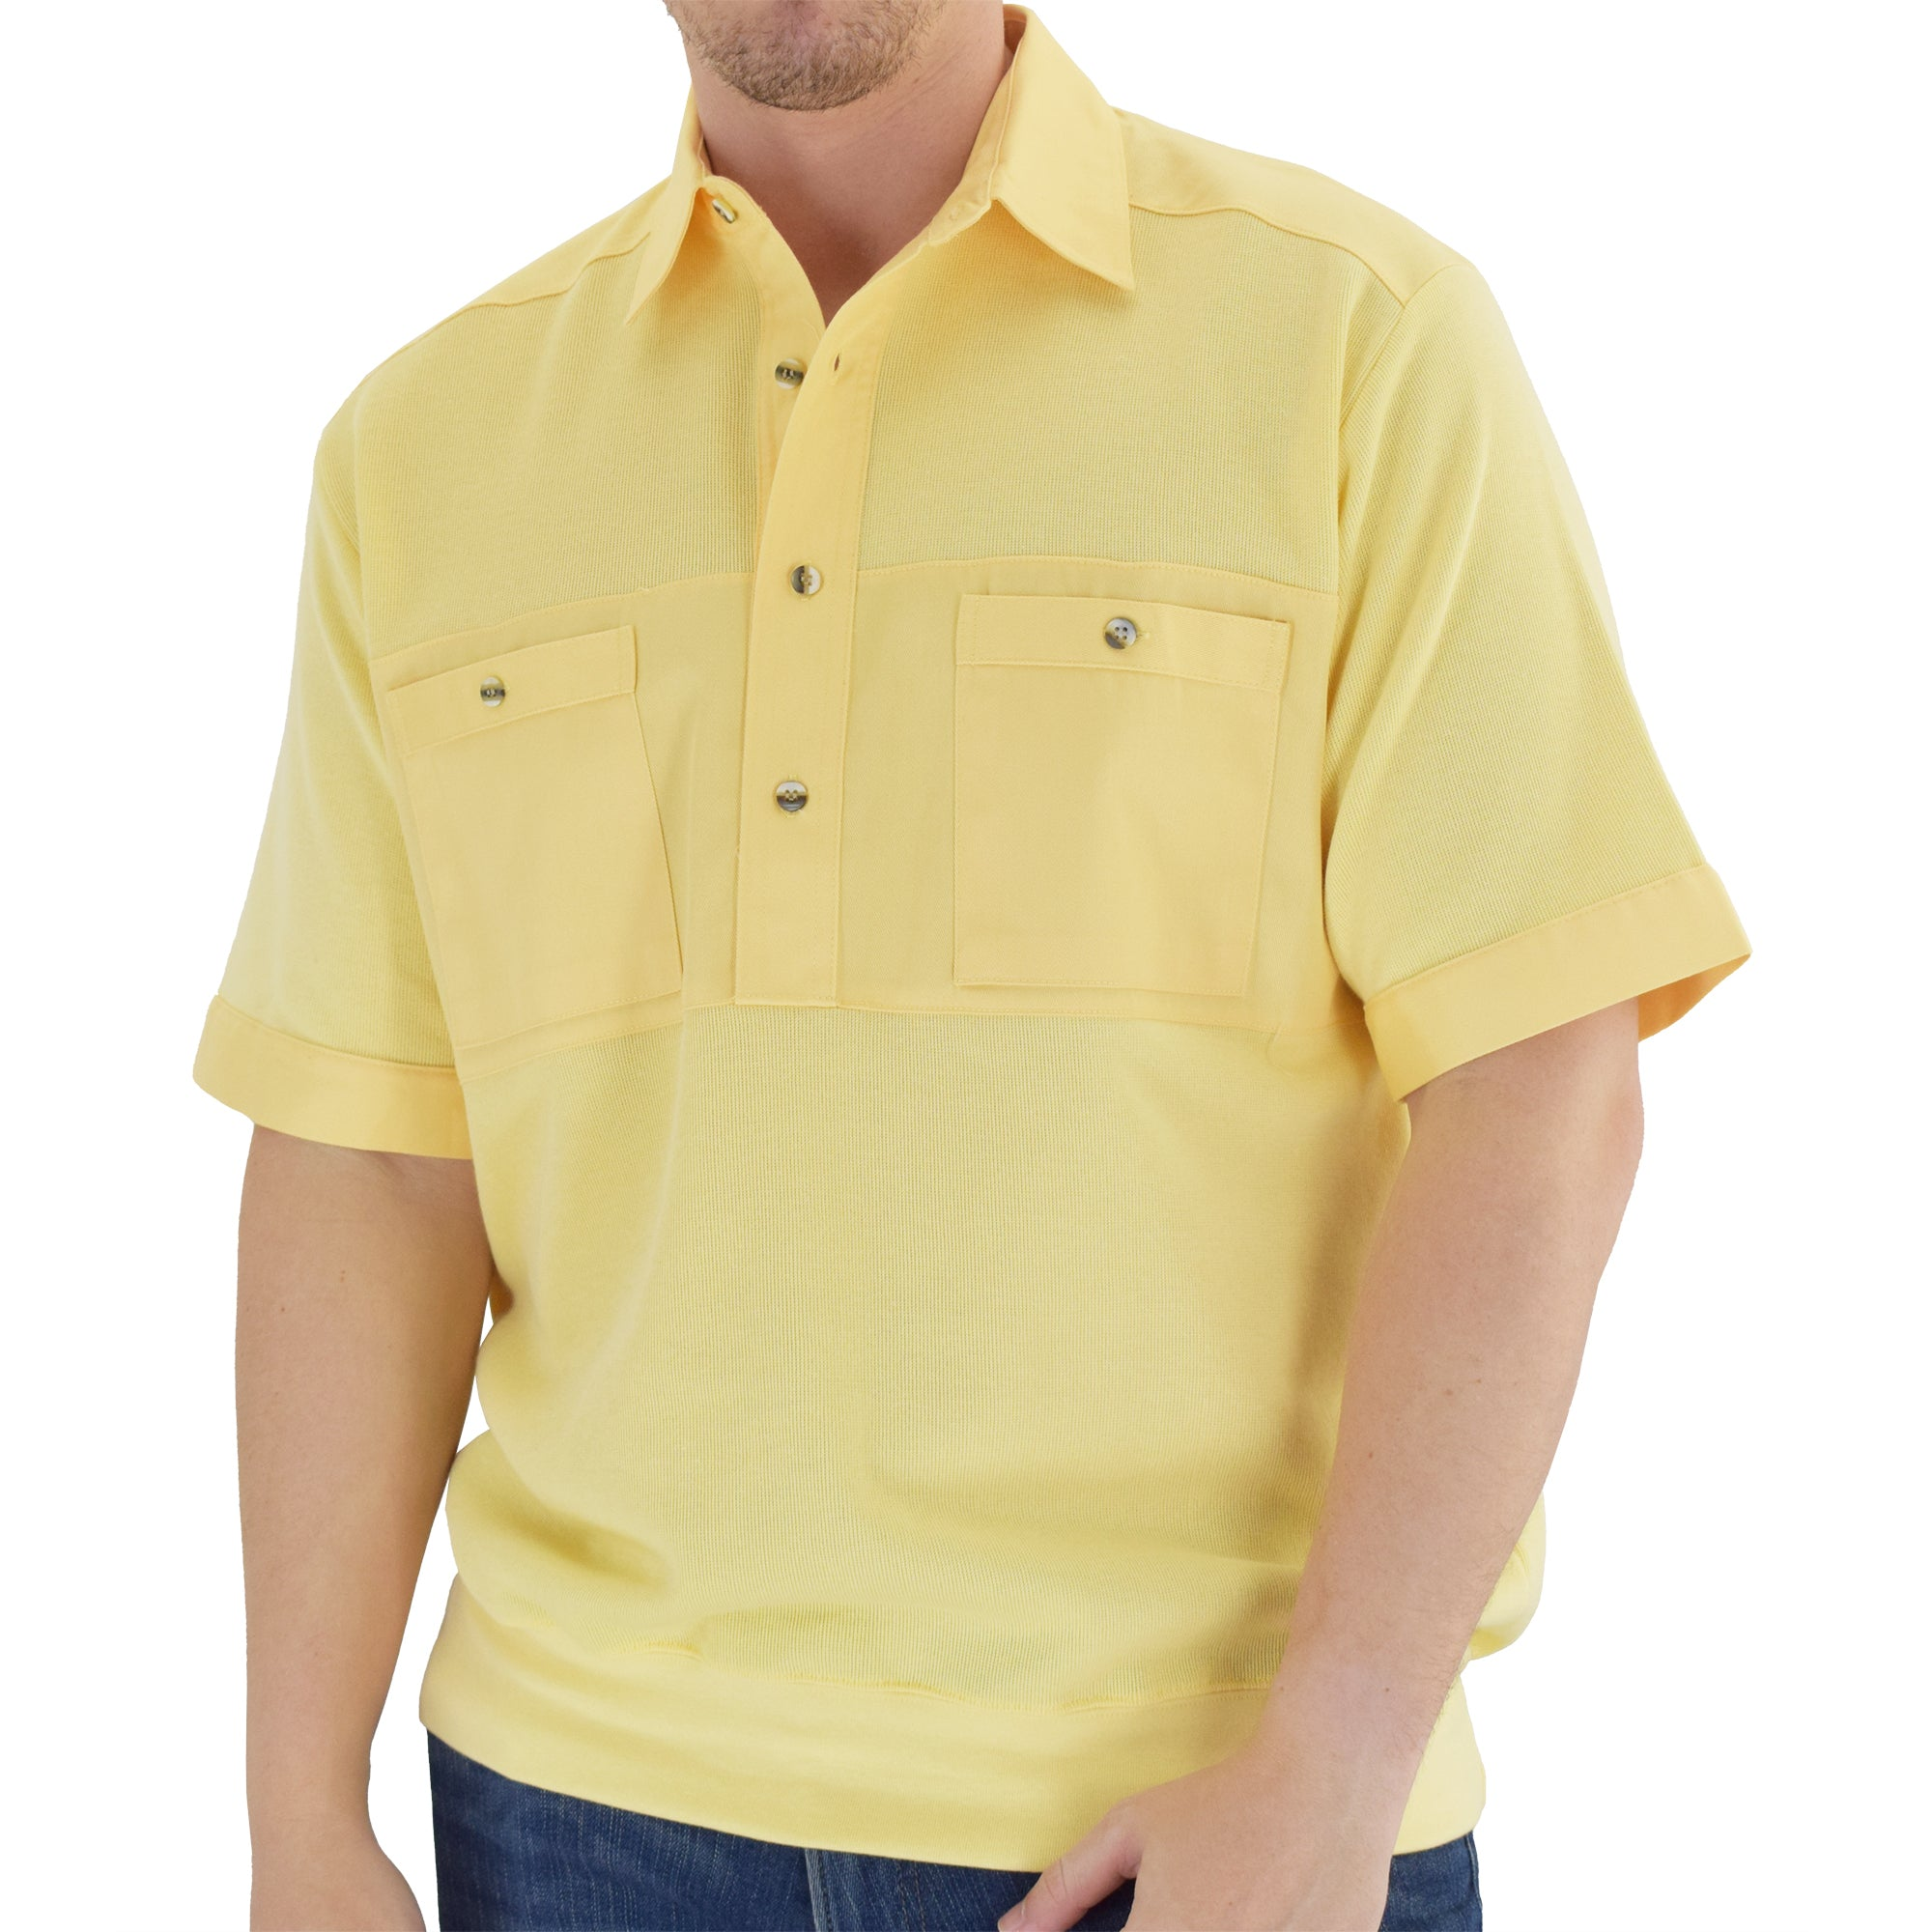 Solid Knit Banded Bottom Shirt with Woven Chest Panel 6041-22N - Maize - theflagshirt